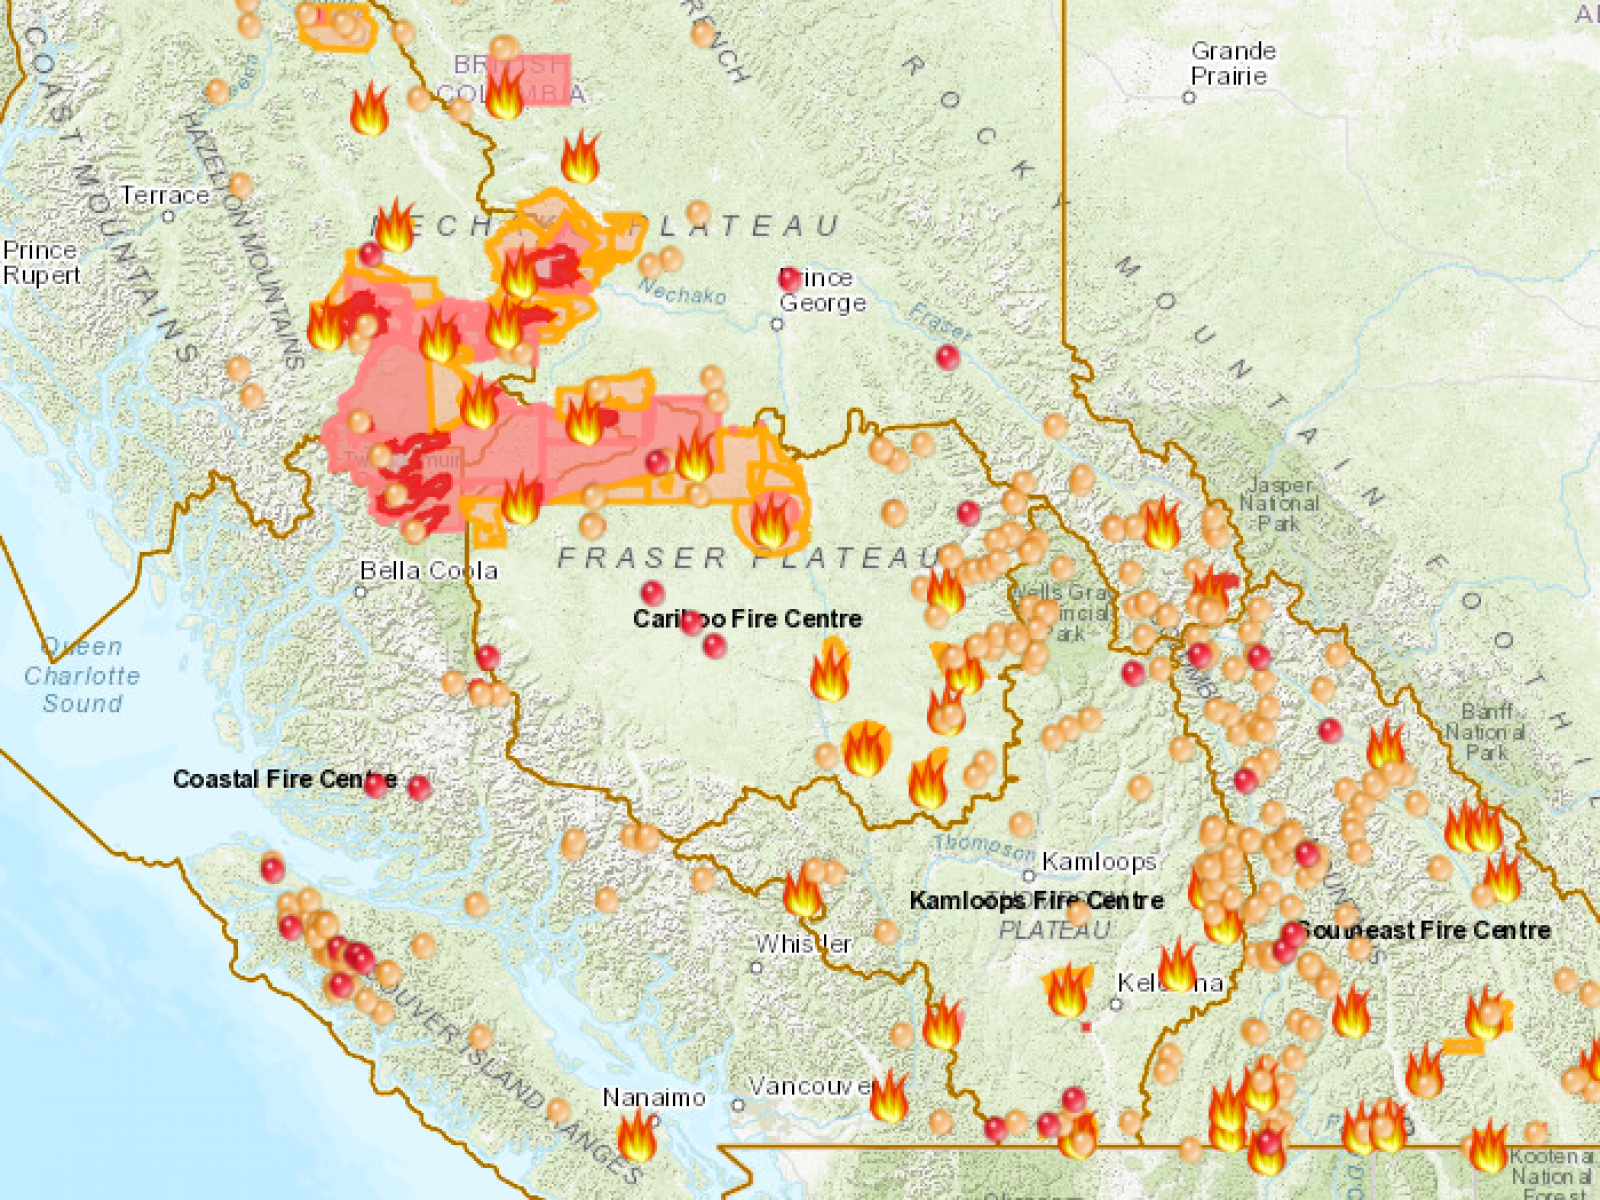 Us Wildfire Map 2018 Canada Fires 2018: B.C. Wildfire Map Shows Where 566 Fires Are